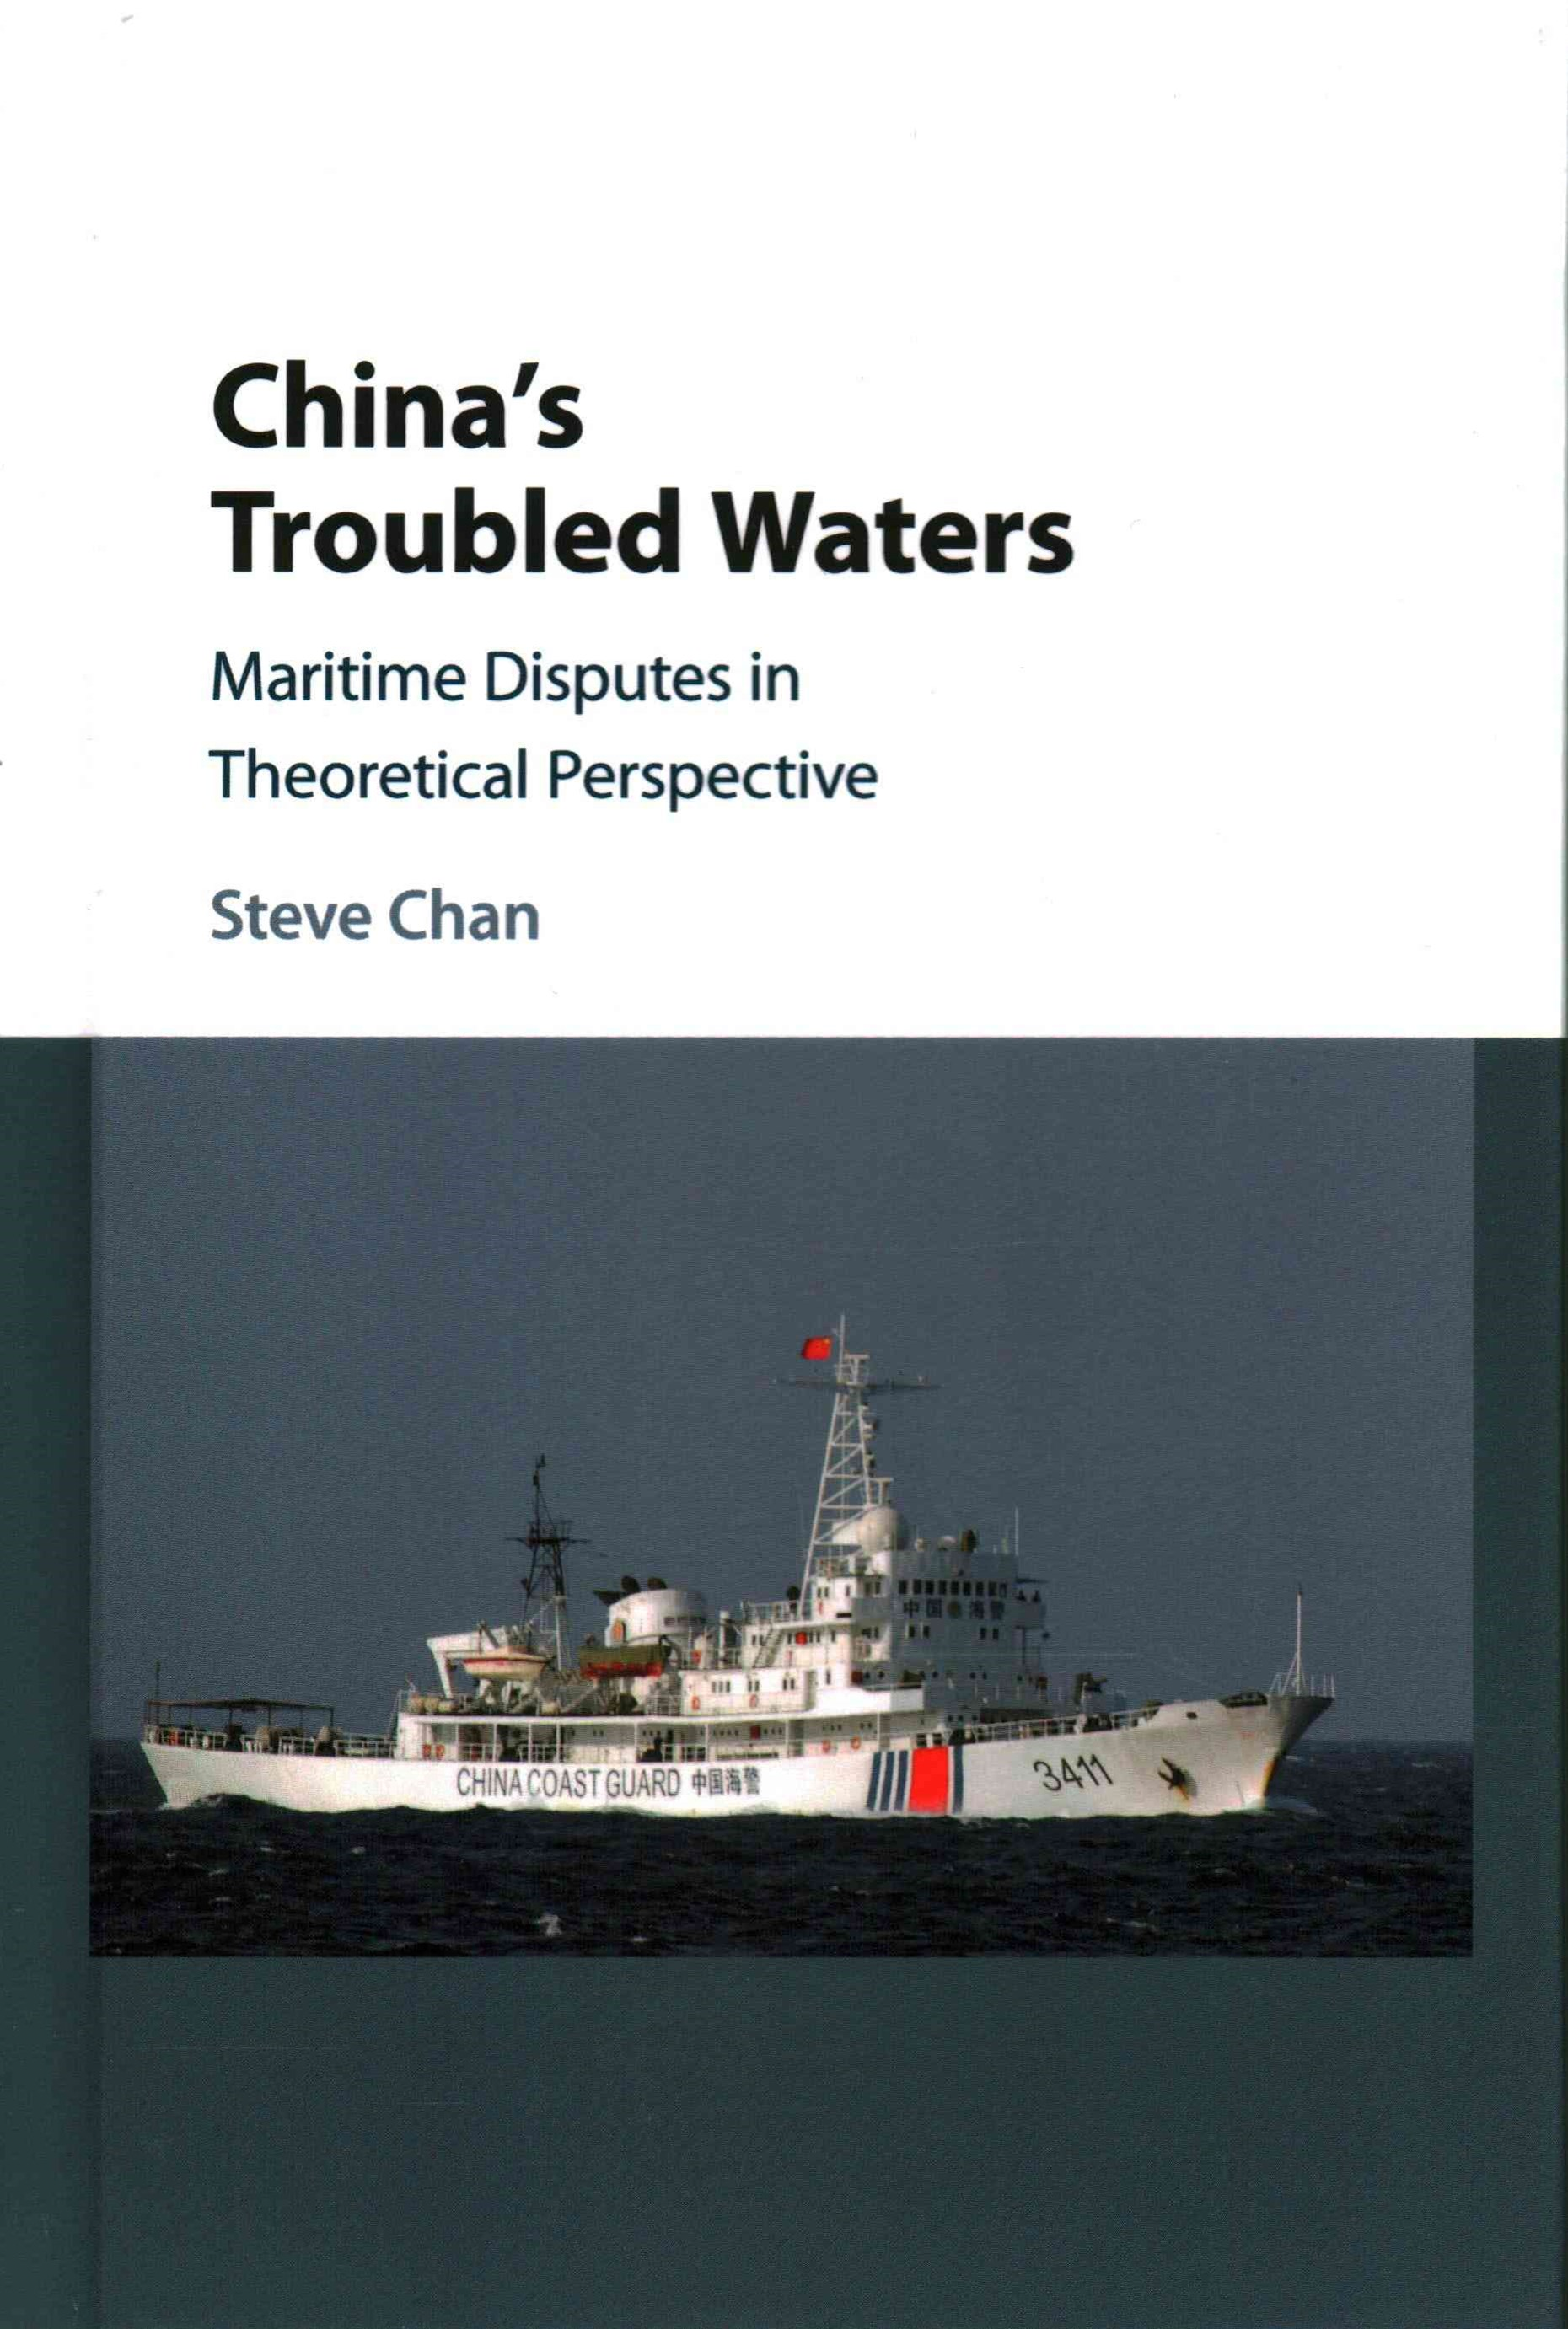 China's Troubled Waters